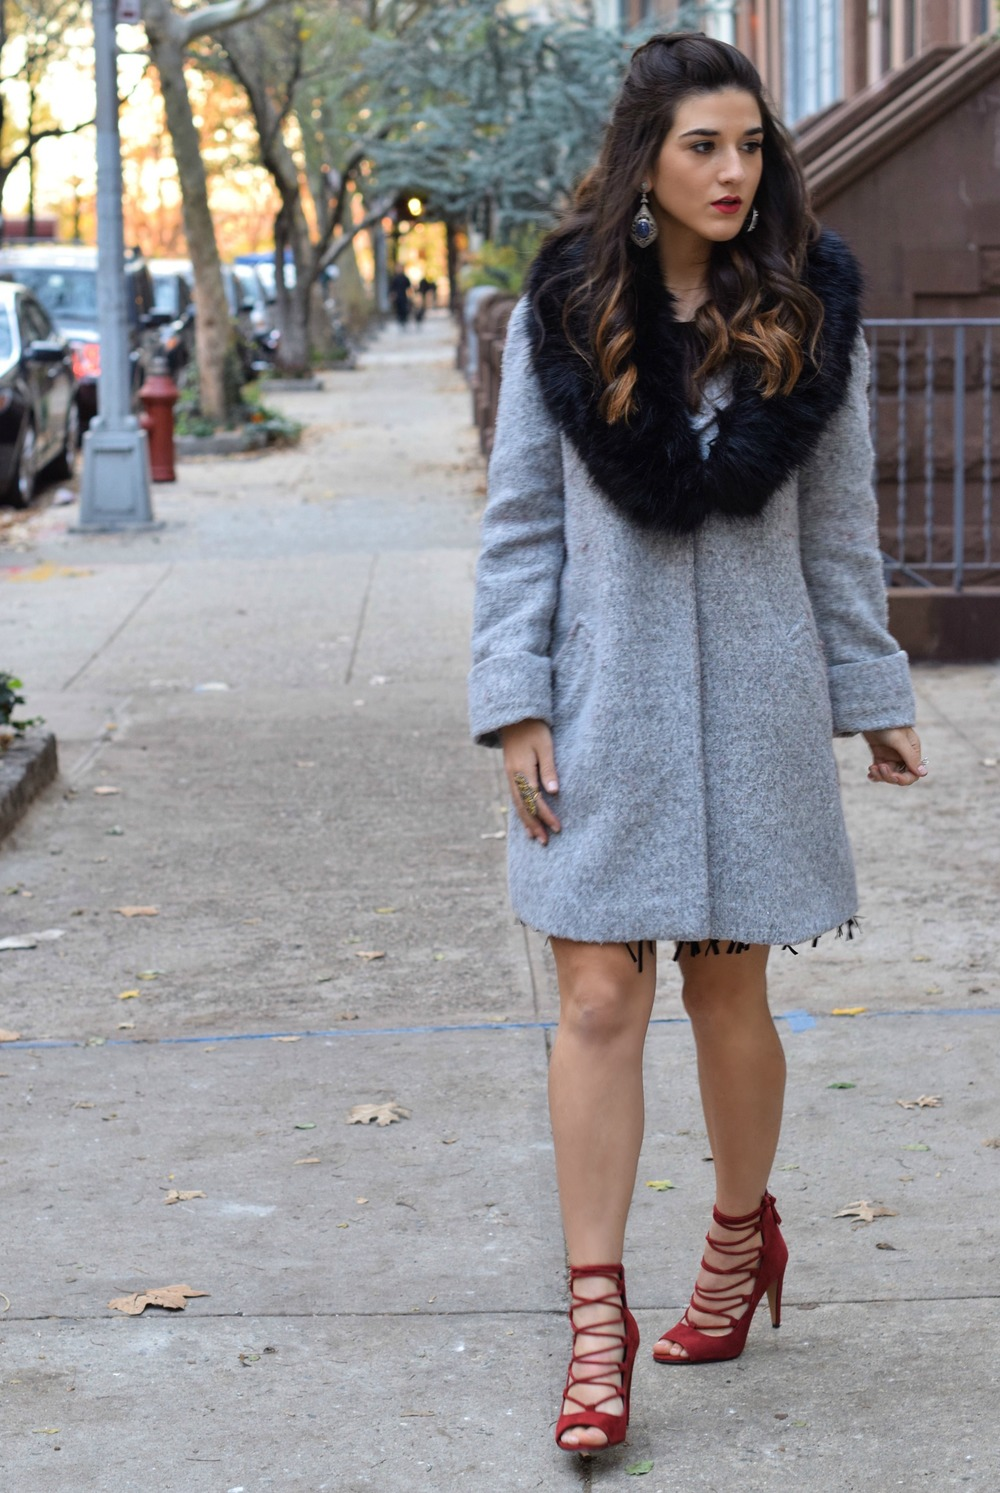 Dripping In Diamonds Elahn Jewels Louboutins & Love Fashion Blog Esther Santer NYC Street Style Blogger Black Fur Stole Earrings Jewelry Peacoat Grey Coat Winter Wear Shopping Beauty Chic Rings Red Heels Sandals Inspo Hair Inspiration OOTD Outfit Zara.jpg